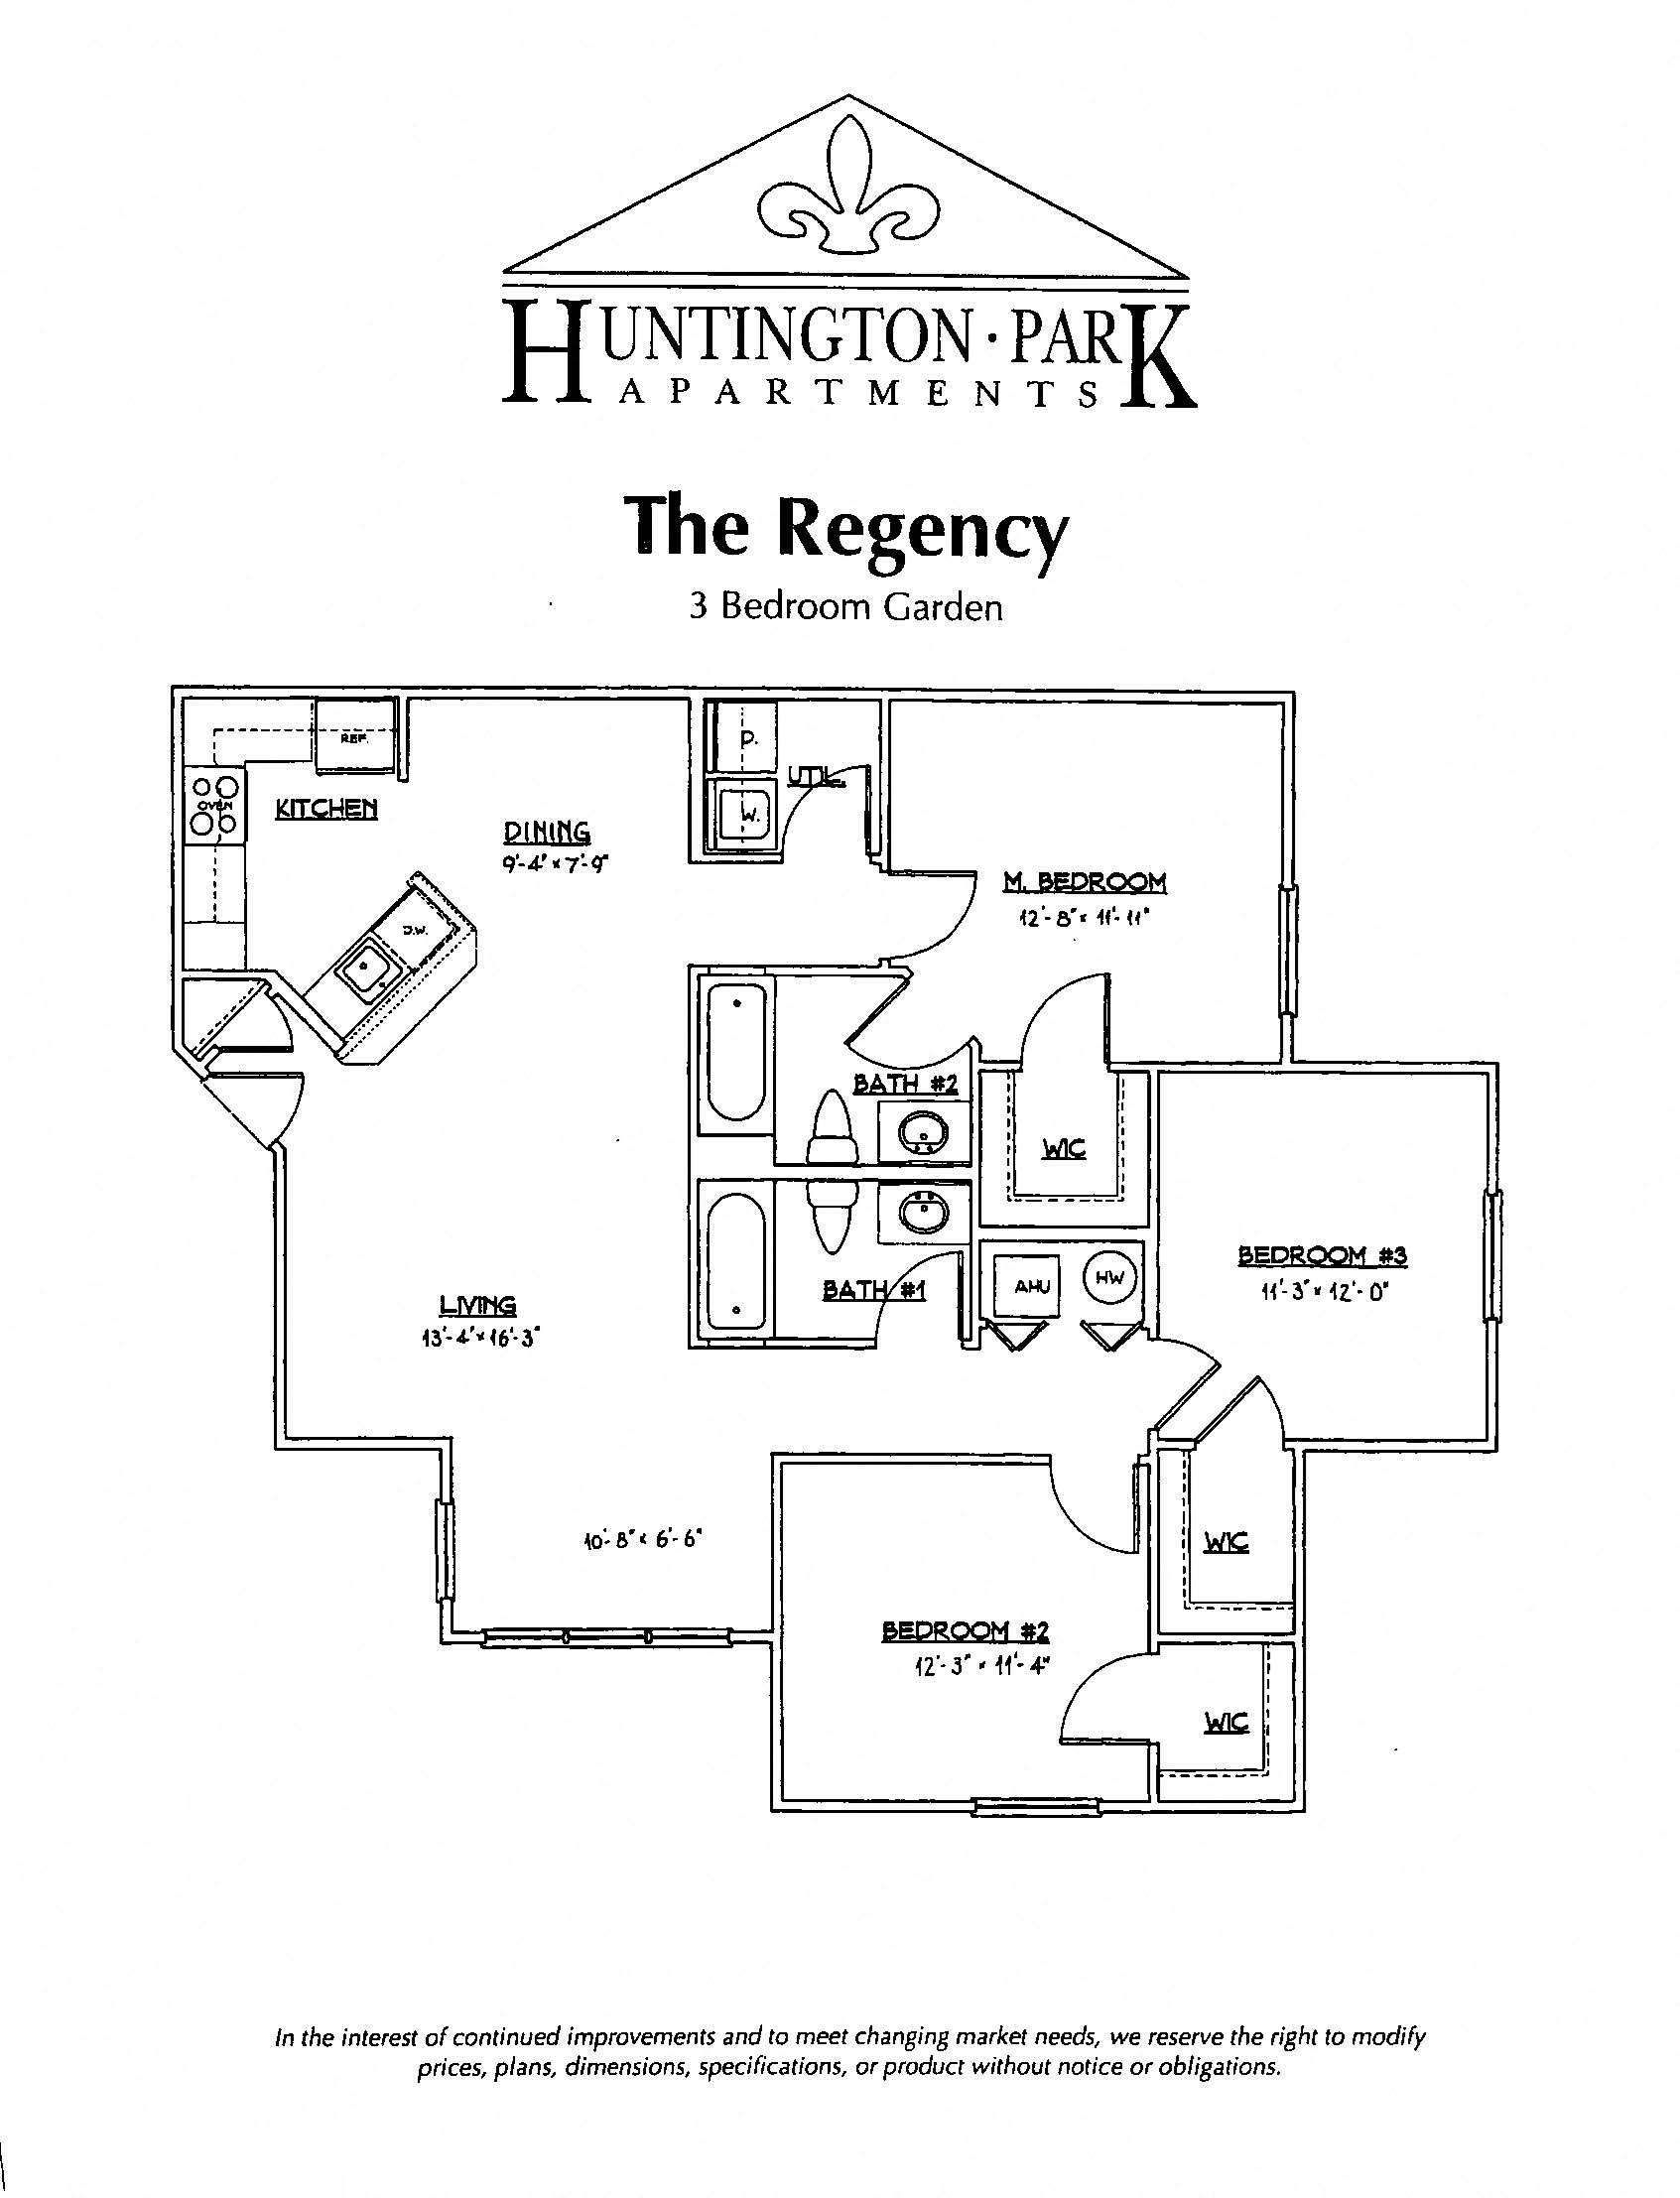 Rent An Apartment In Boalsburg | Huntington Park Apartments